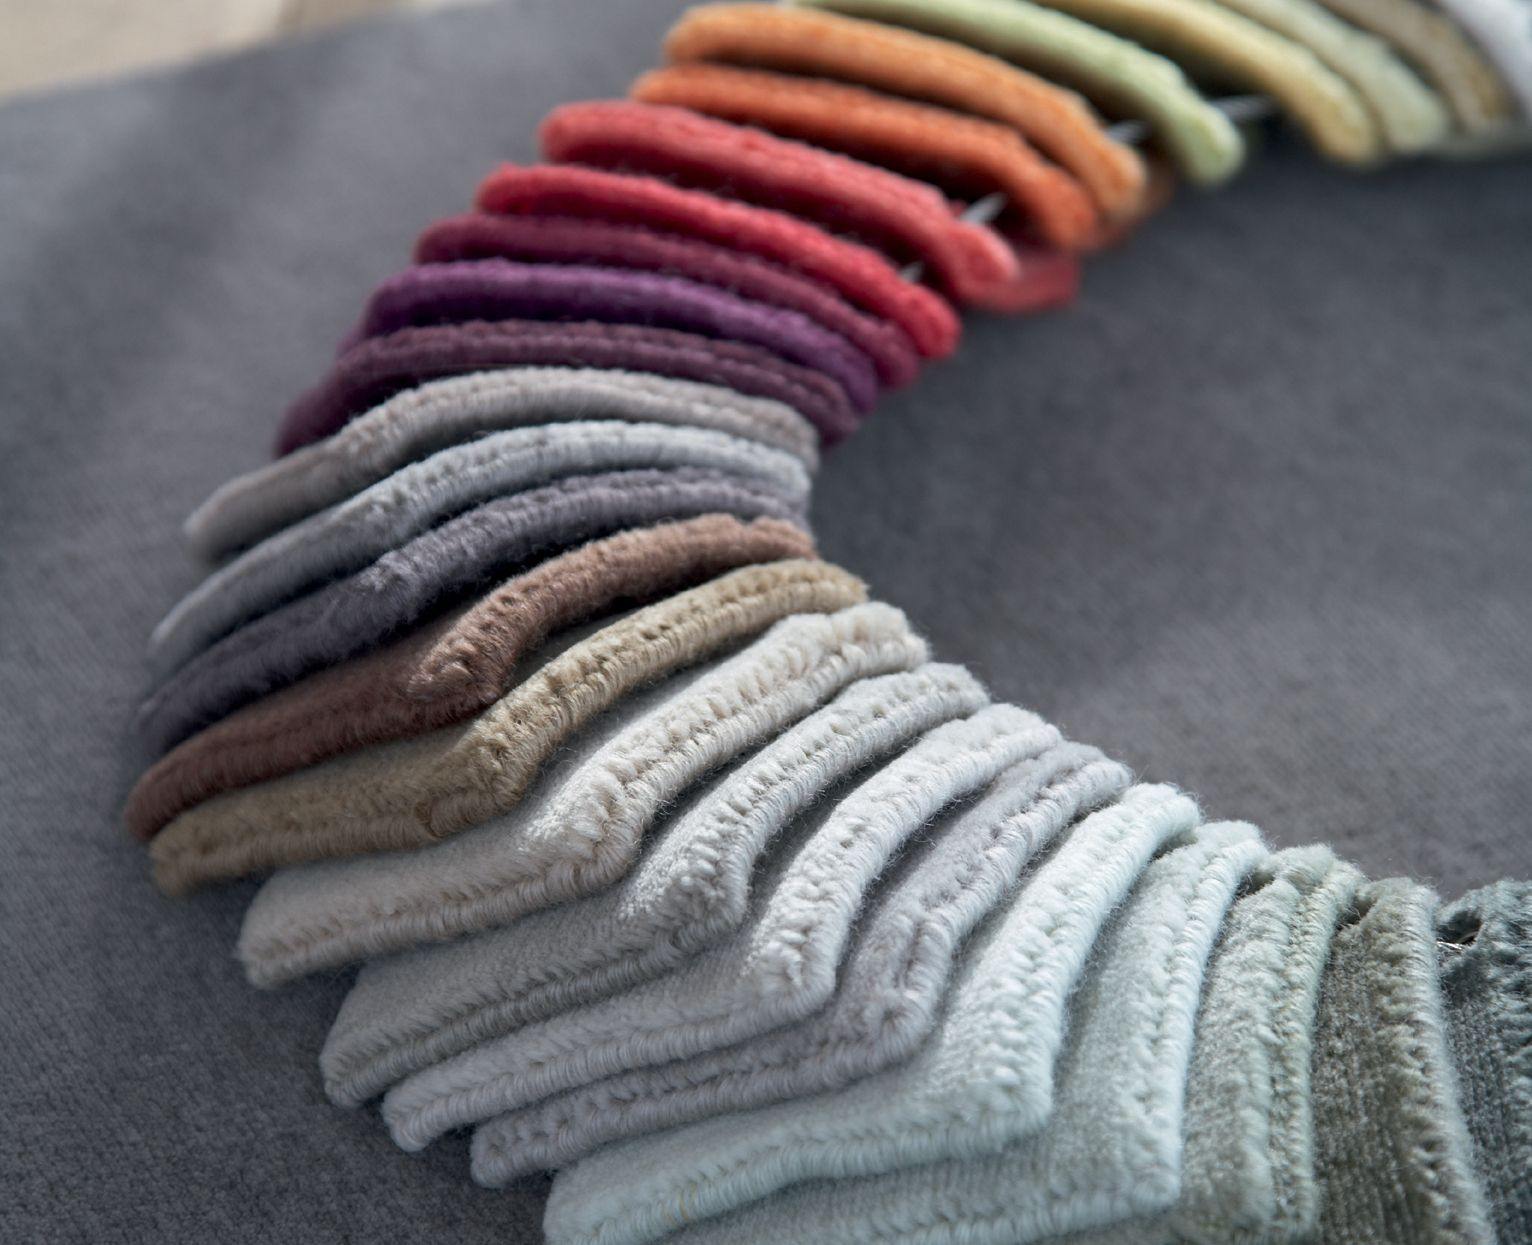 Consumer Guide To Cost Of Carpet, Installation, Cleaning And Repair Prices